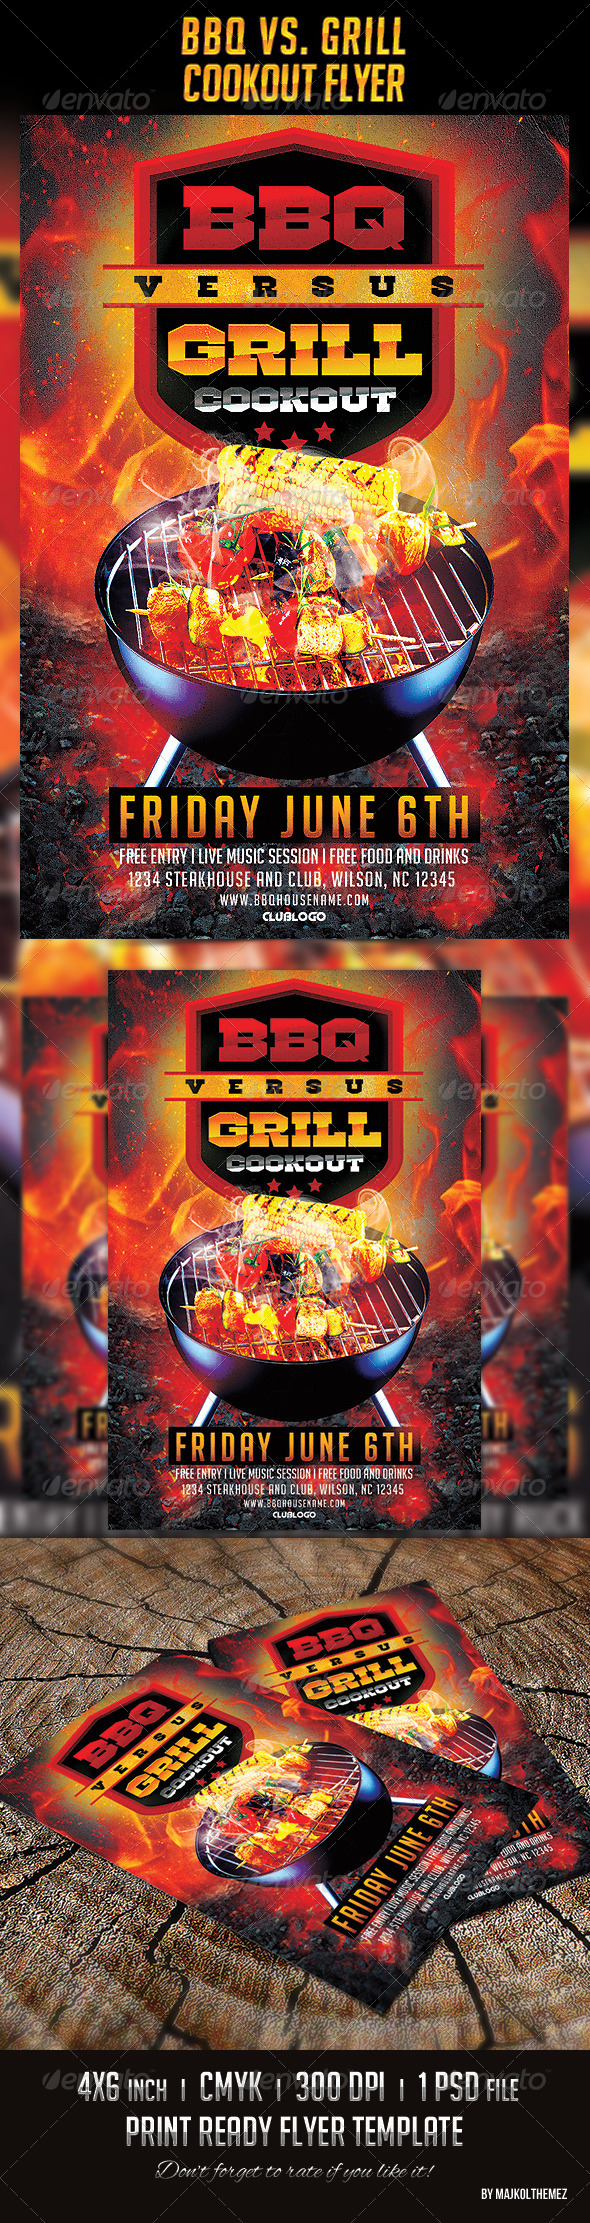 BBQ vs Grill Cookout Flyer - Events Flyers